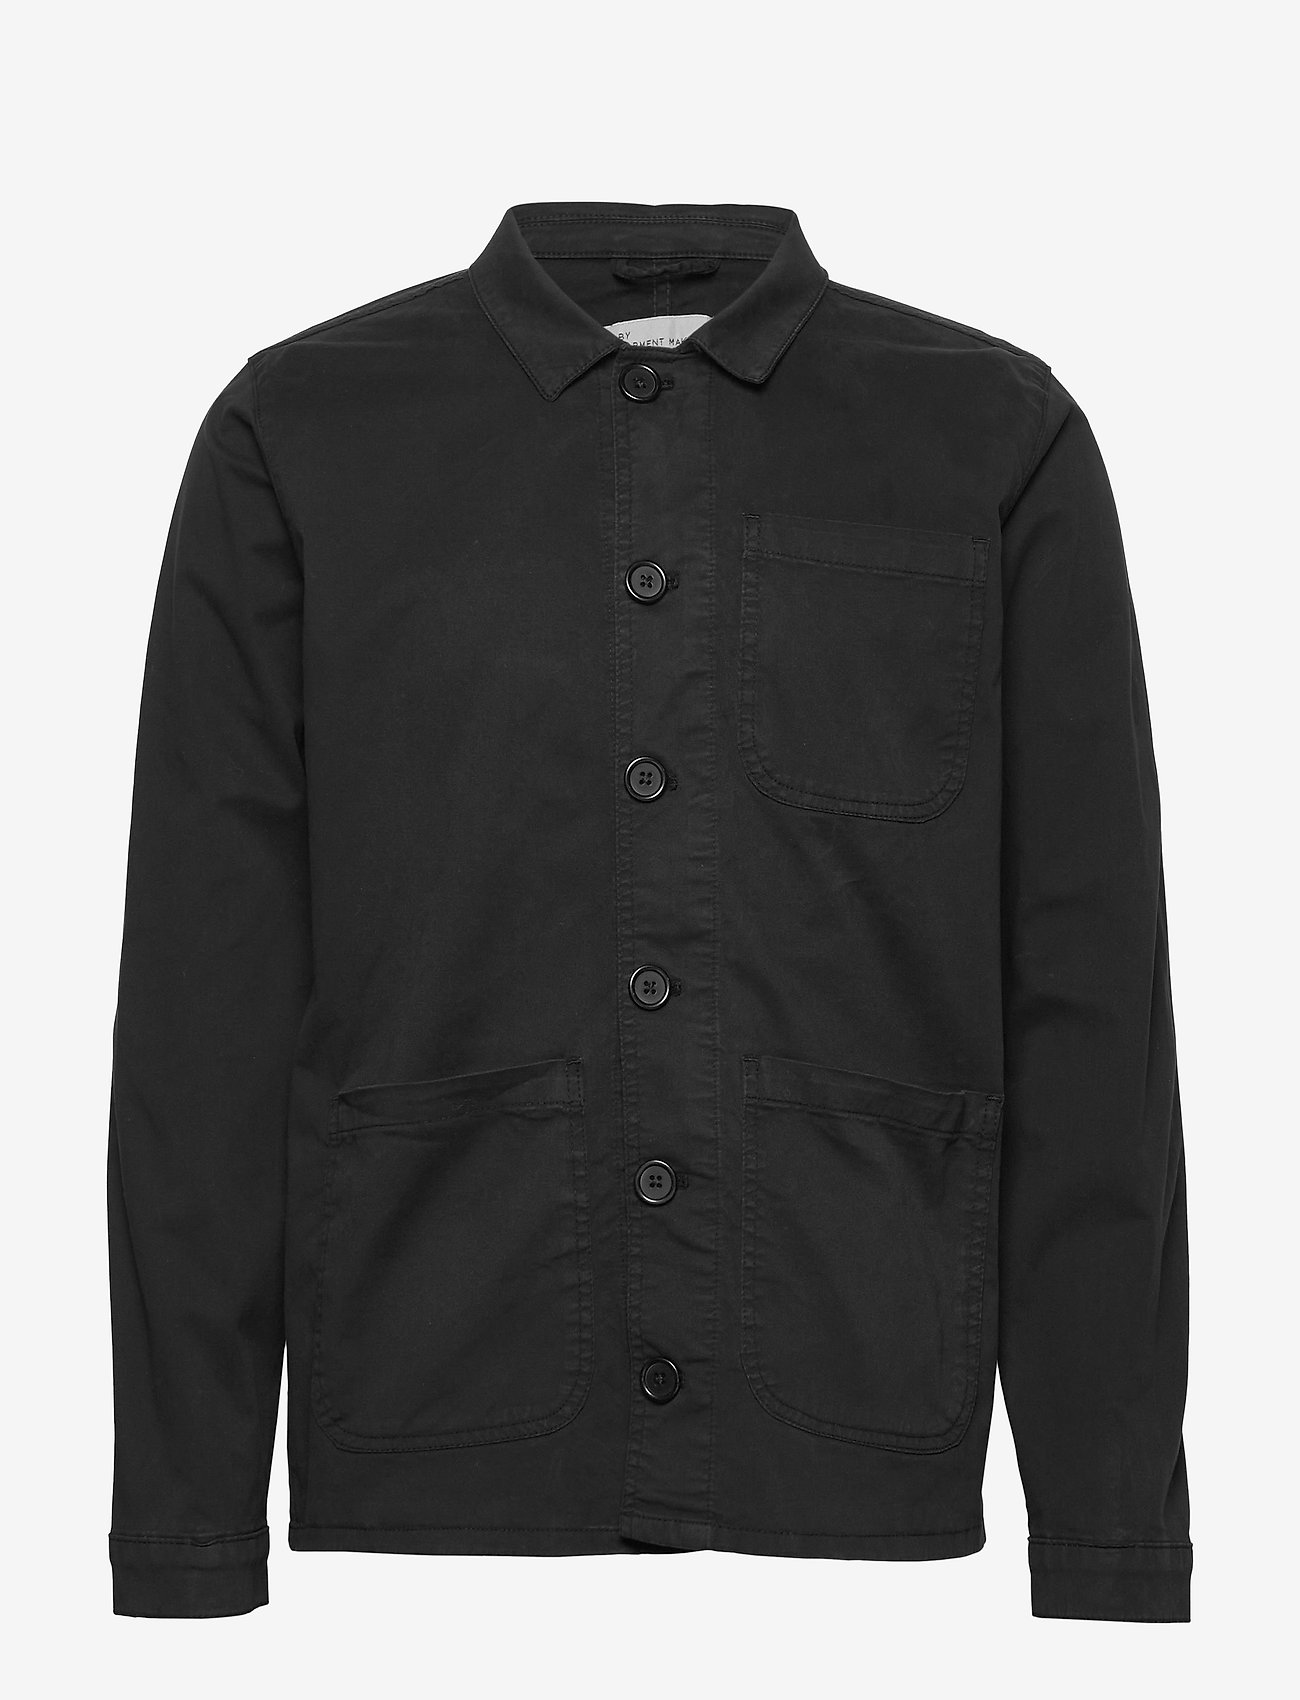 By Garment Makers - The Organic Workwear Jacket - podstawowe koszulki - jet black - 0